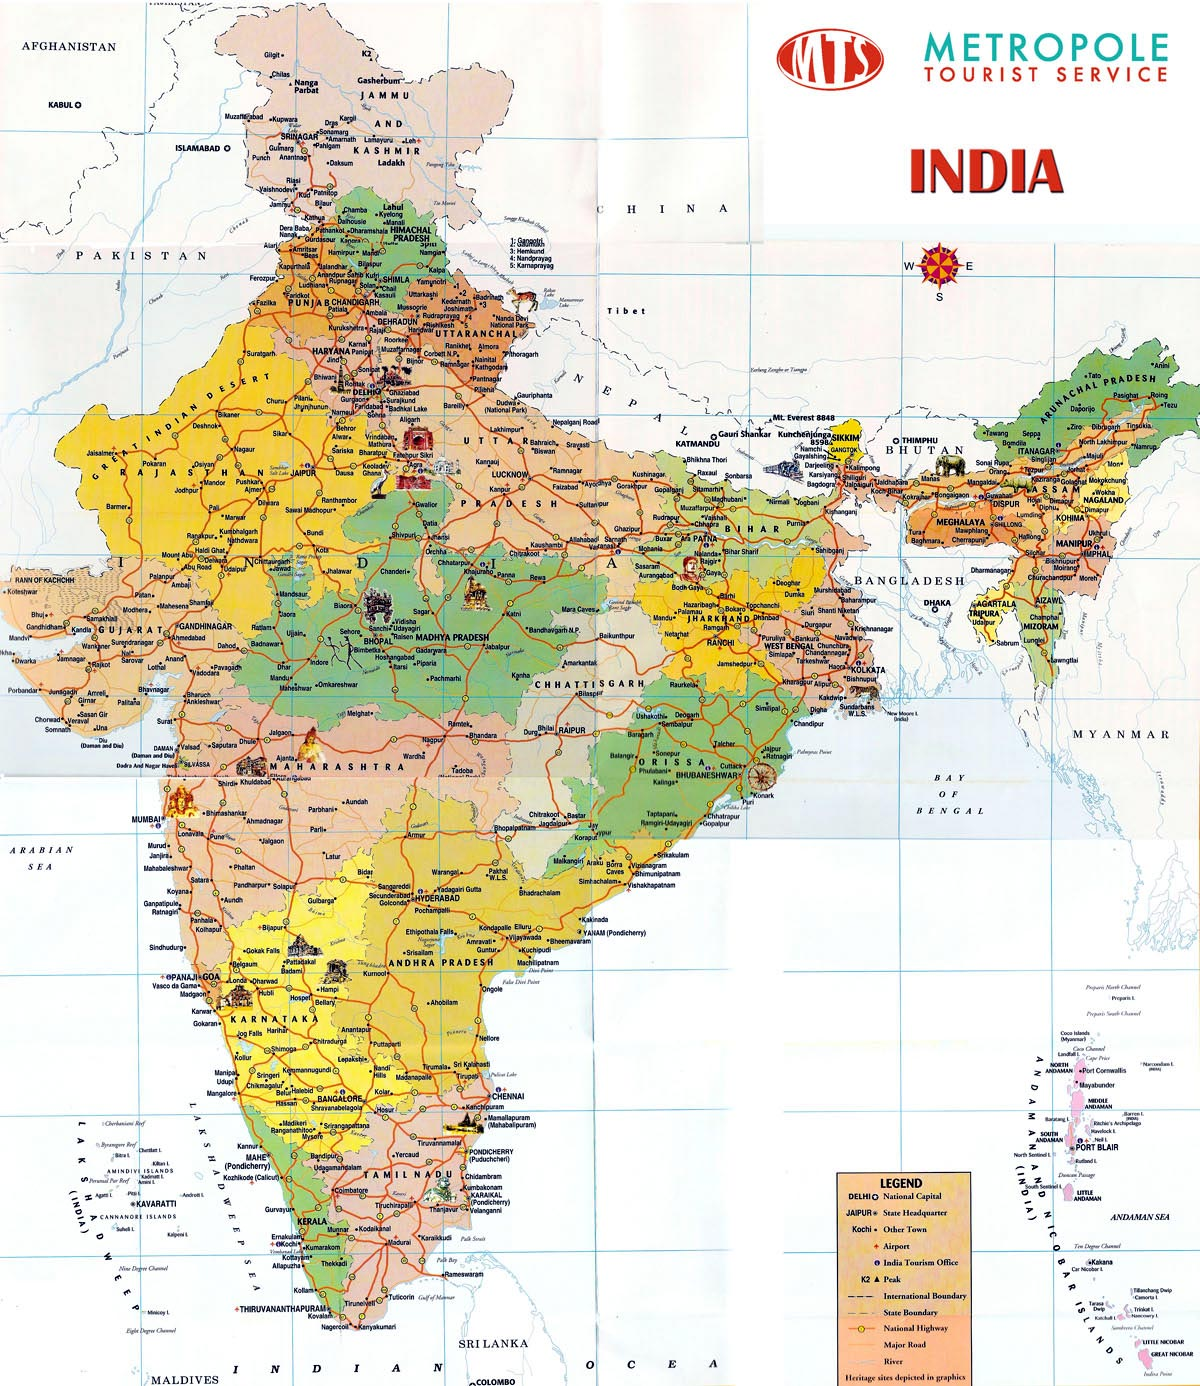 India Map With All States.India Maps Printable Maps Of India For Download